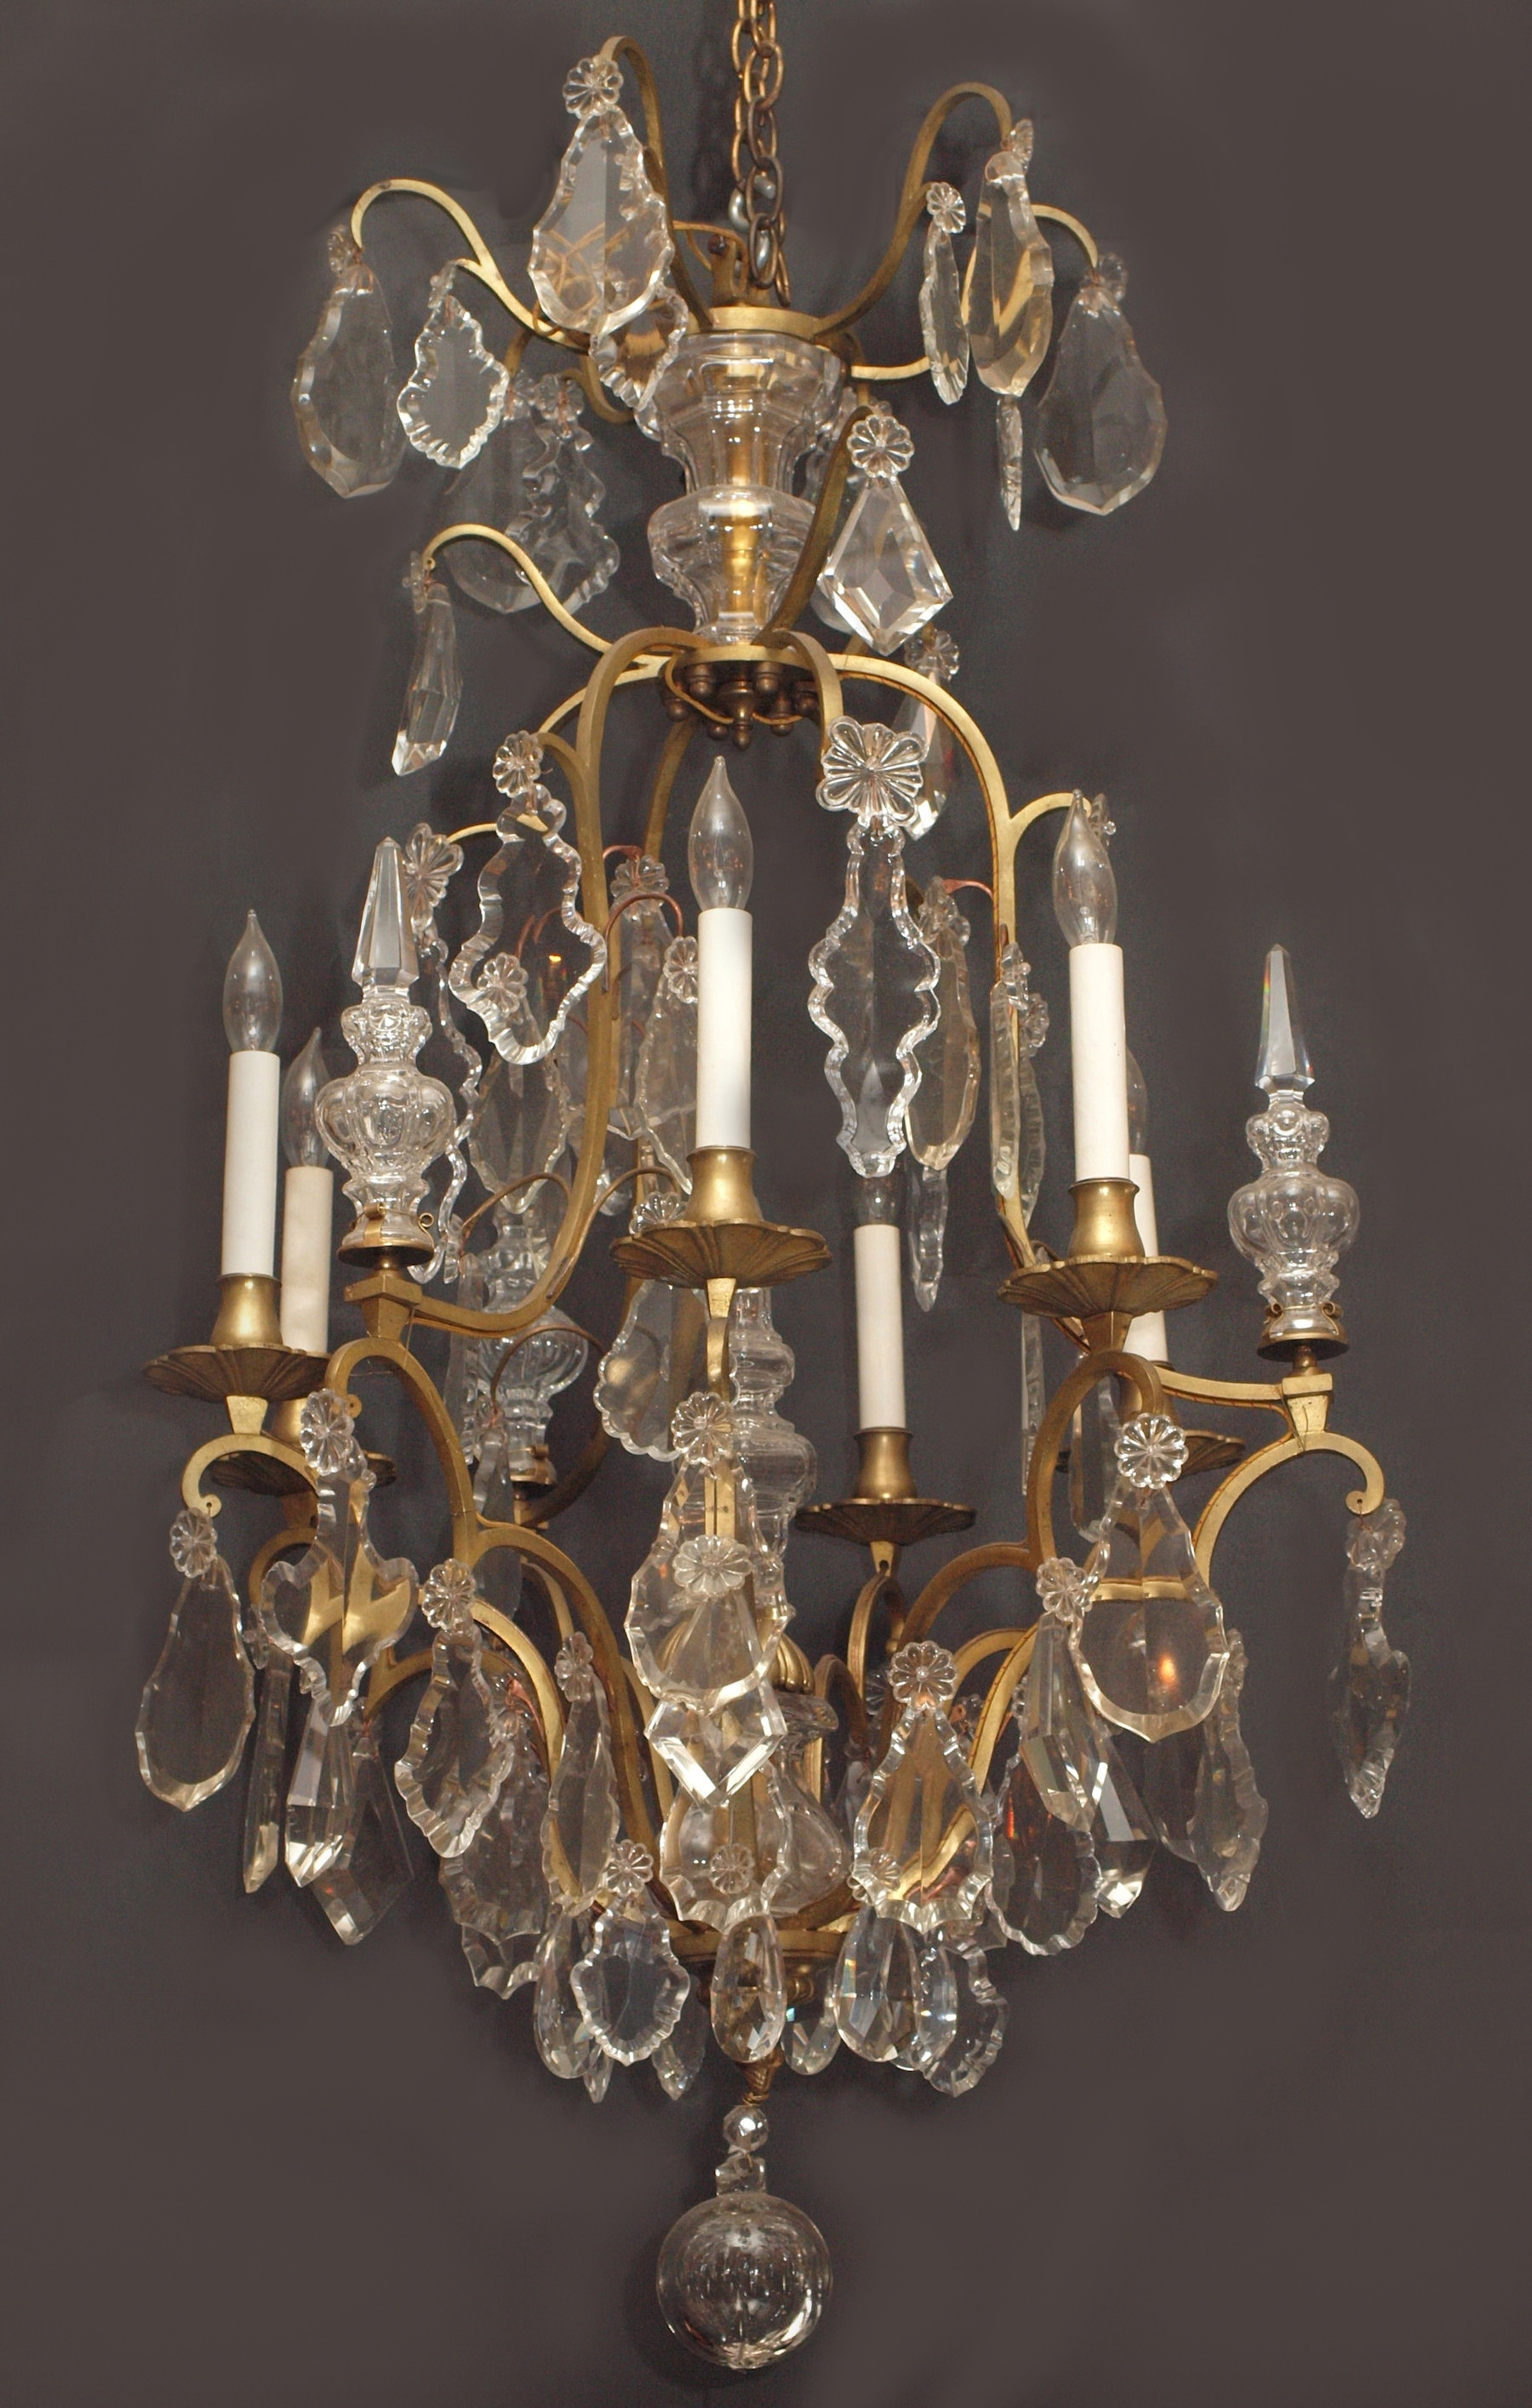 Vintage French Chandelier – Chandelier Designs For Well Known Antique French Chandeliers (View 7 of 15)